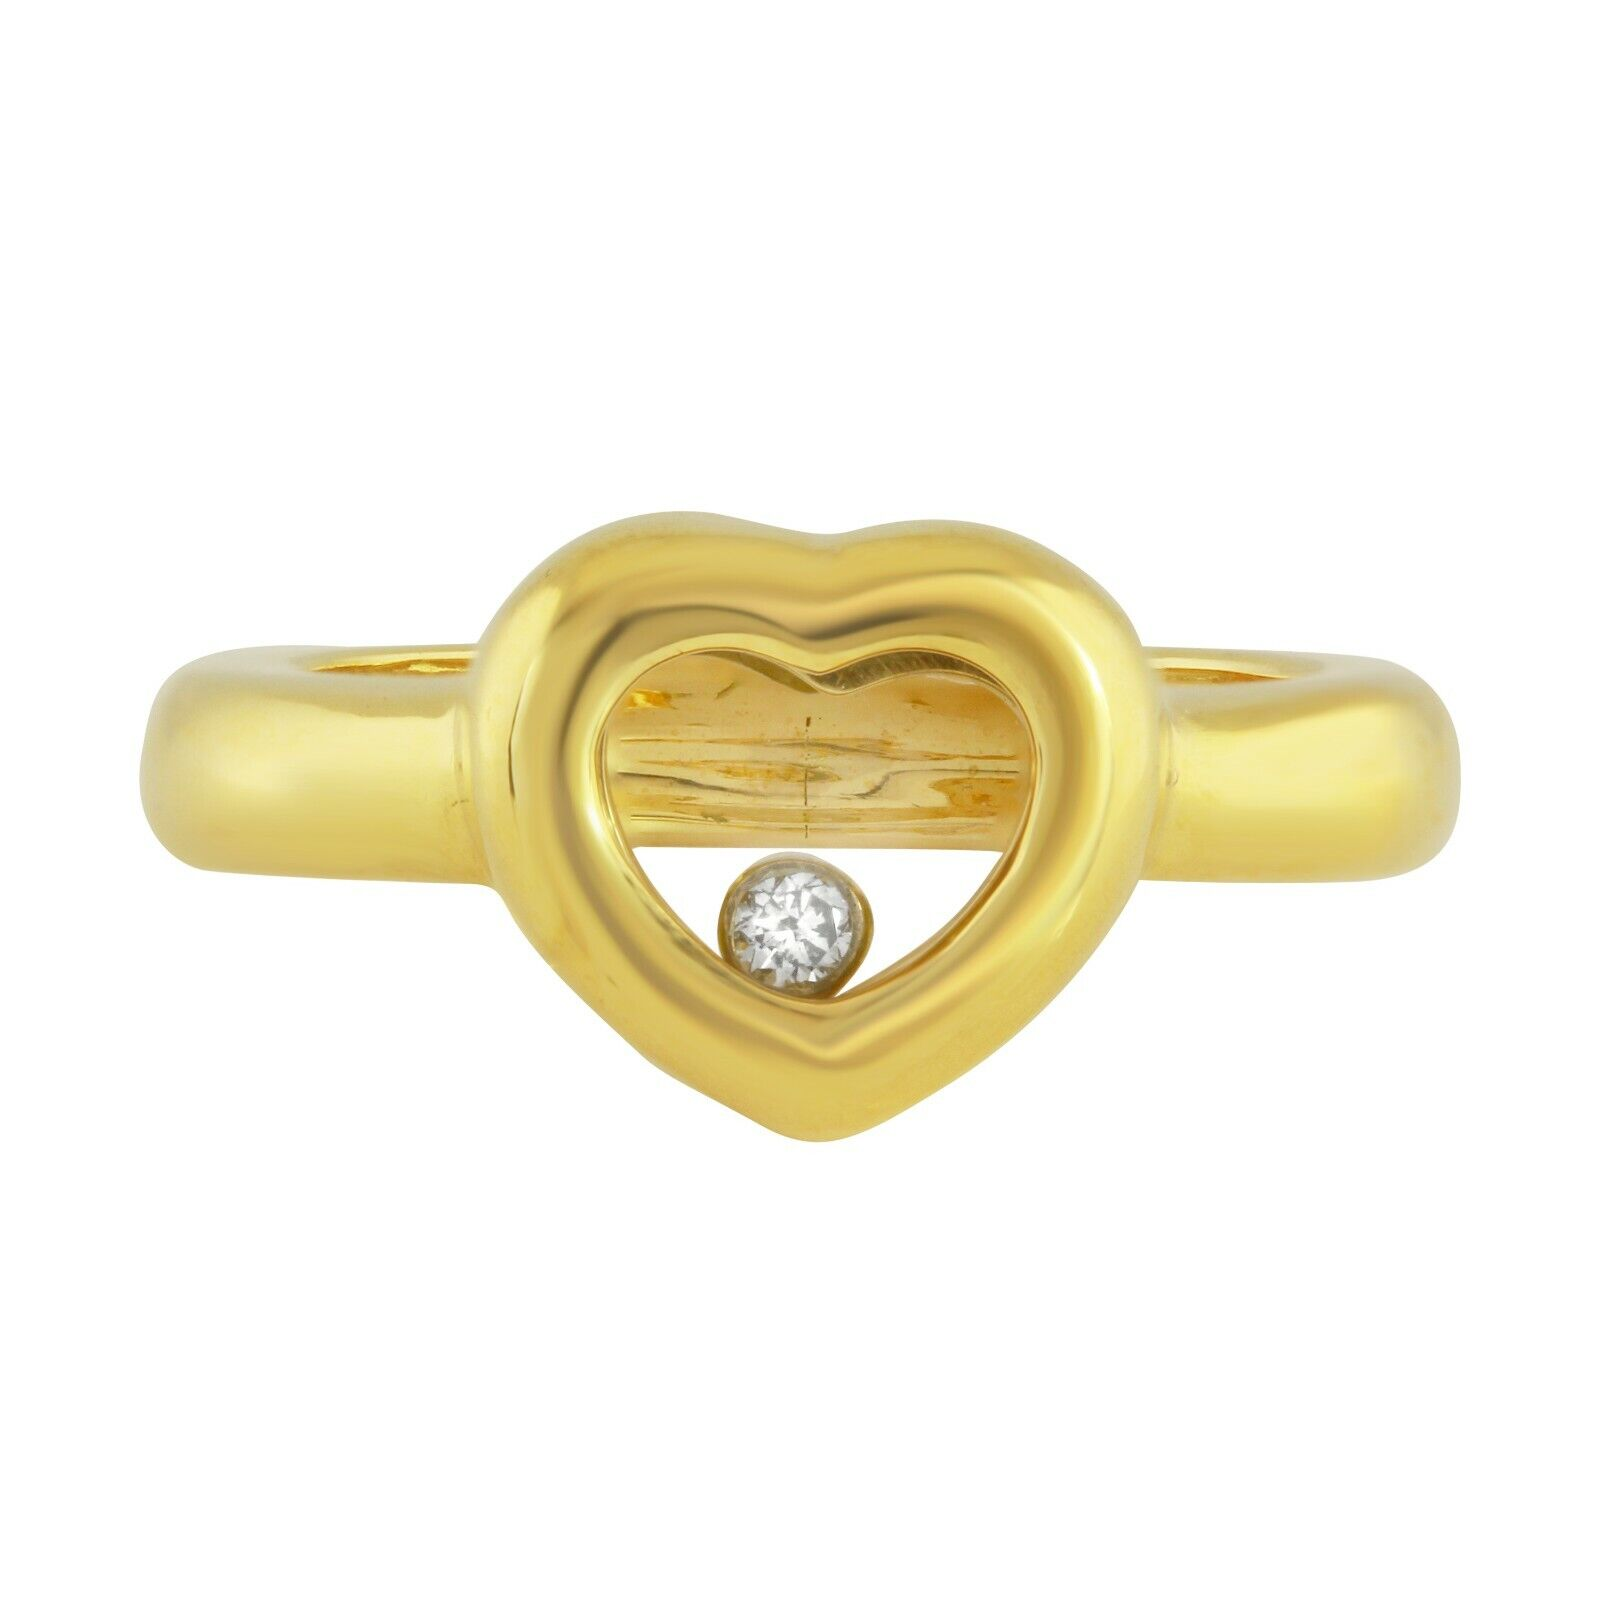 18k Yellow gold Heart Shape Ring with Moving Diamond Size 6.5, 8.3 grams